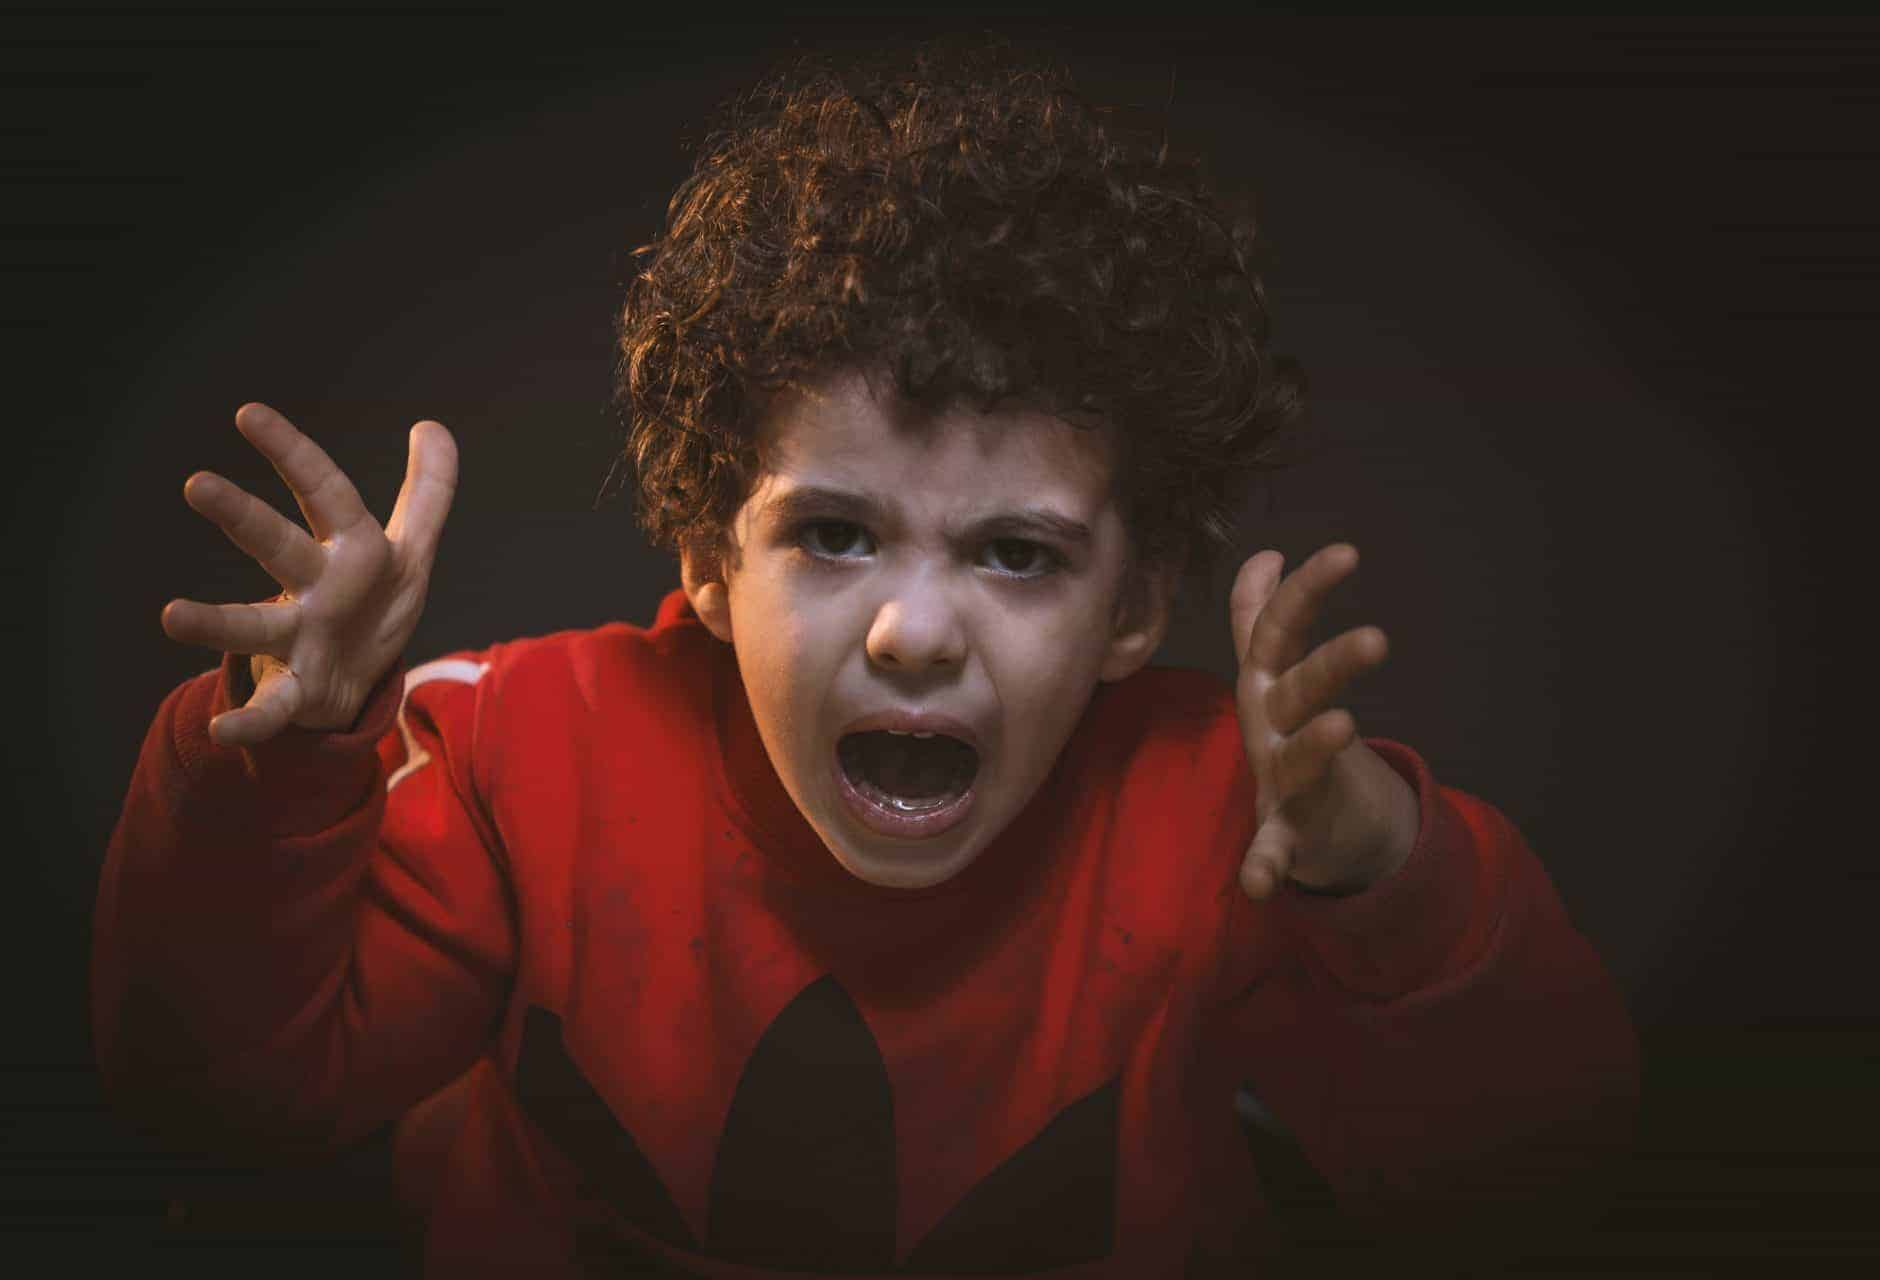 Toddler wearing a red shirt with hands by face yelling